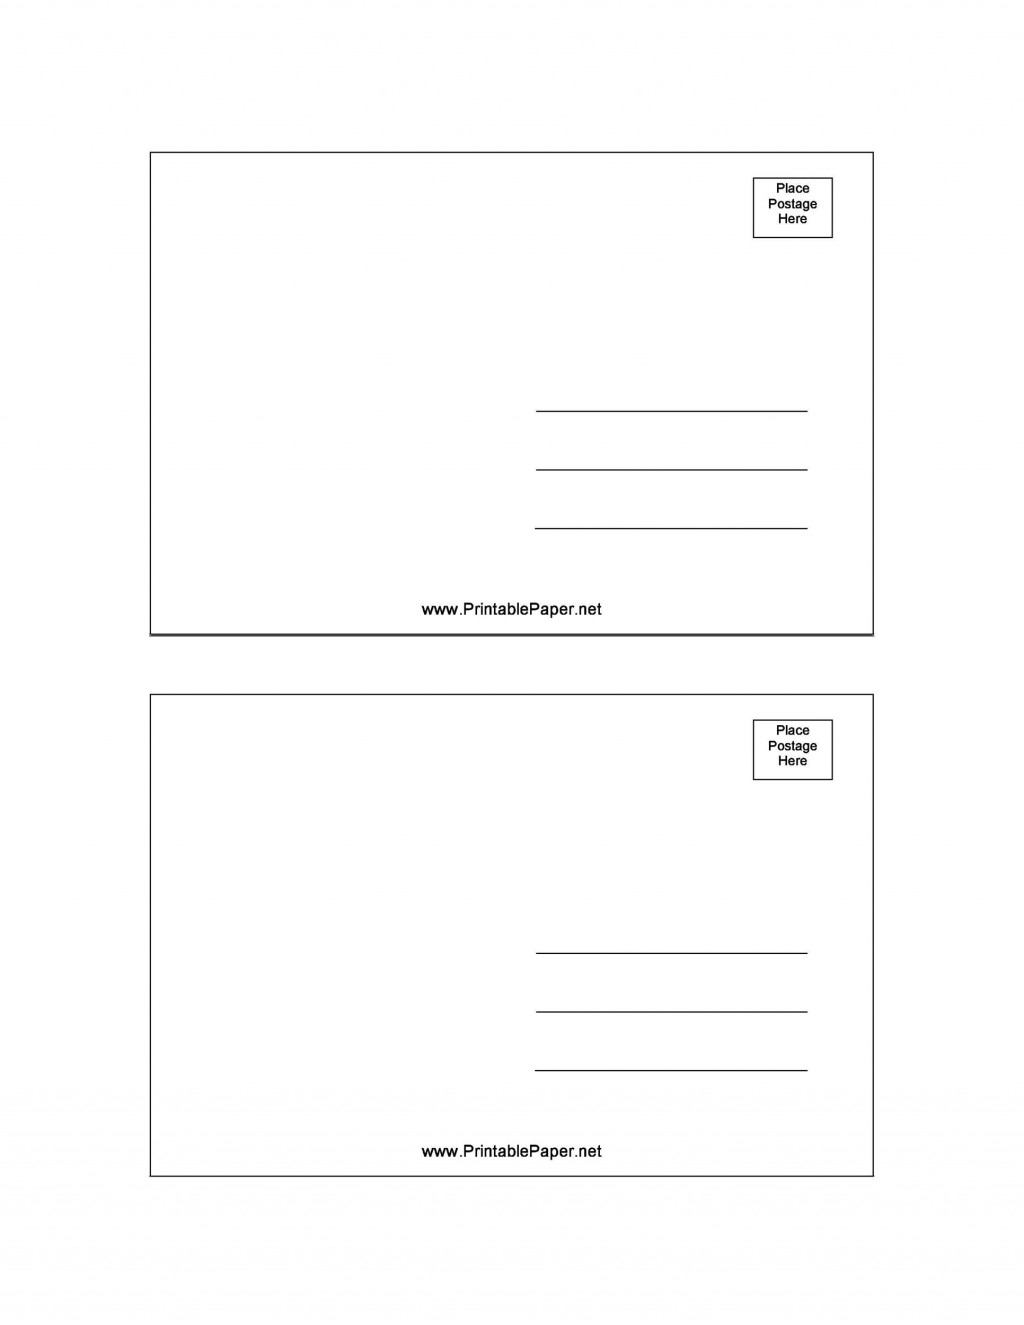 009 Top Free Blank Postcard Template For Word Example  Printable MicrosoftLarge